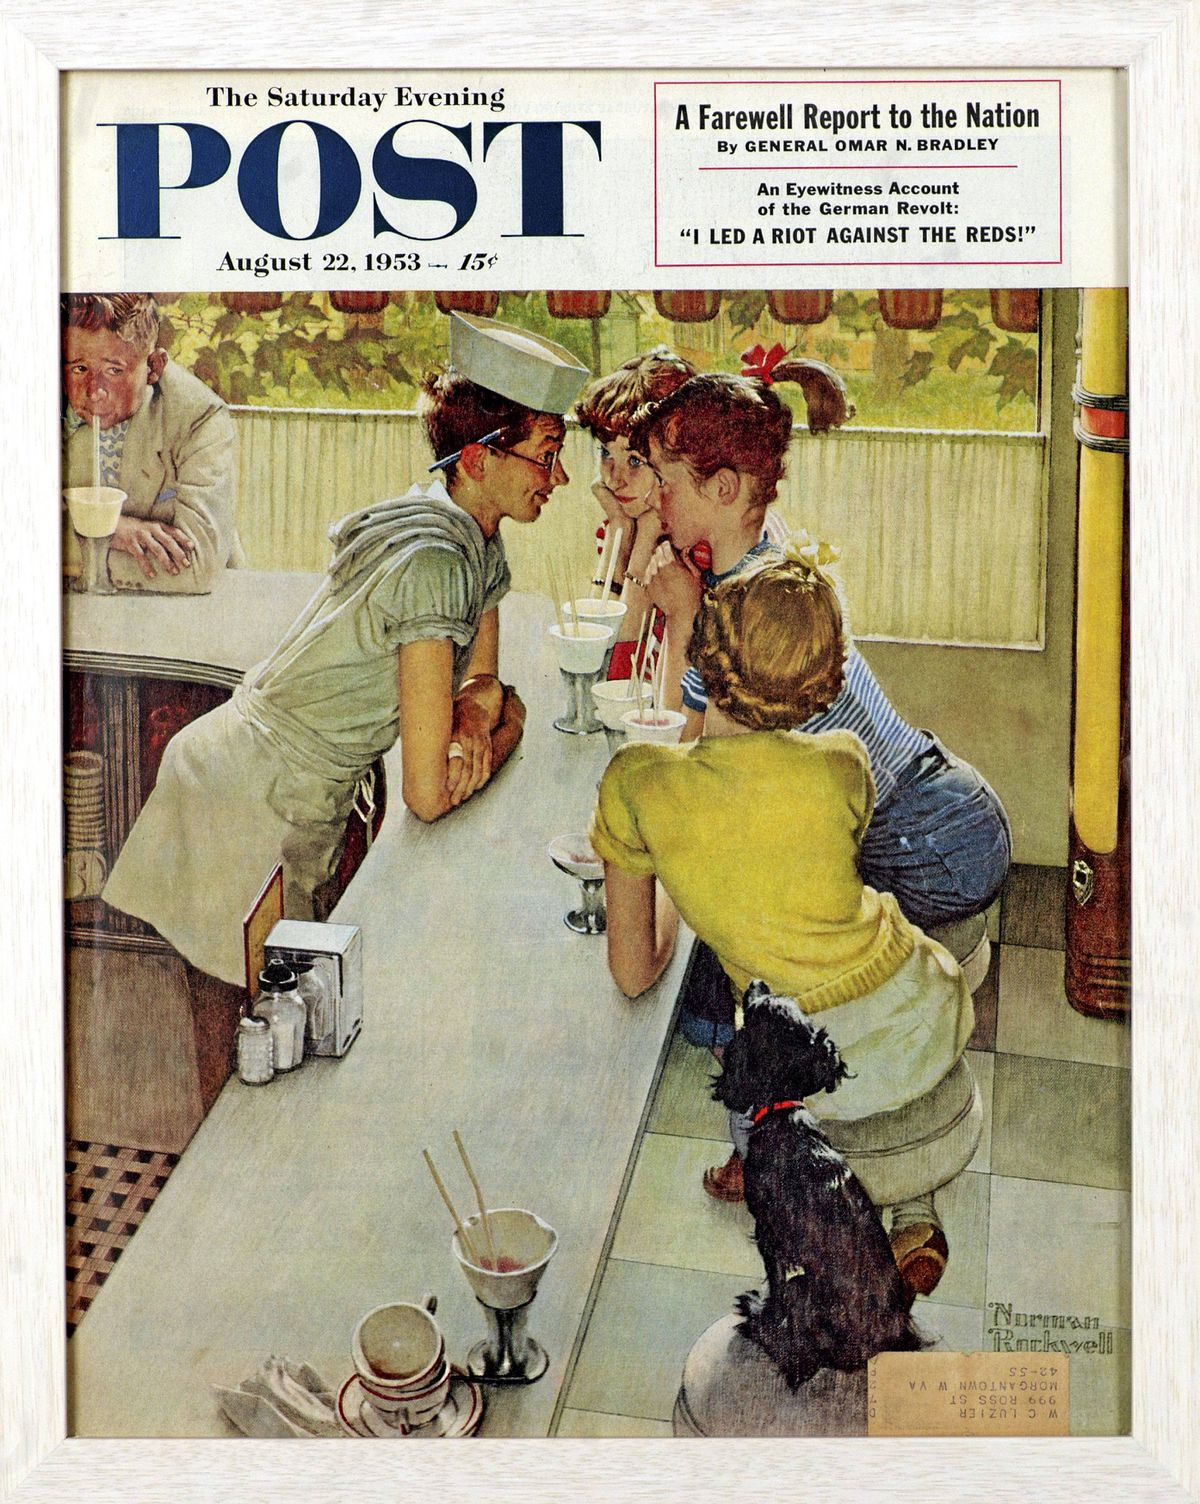 Soda Jerk, Norman Rockwell, 1953. Cover illustration for The Saturday Evening Post, August 22, 1953.